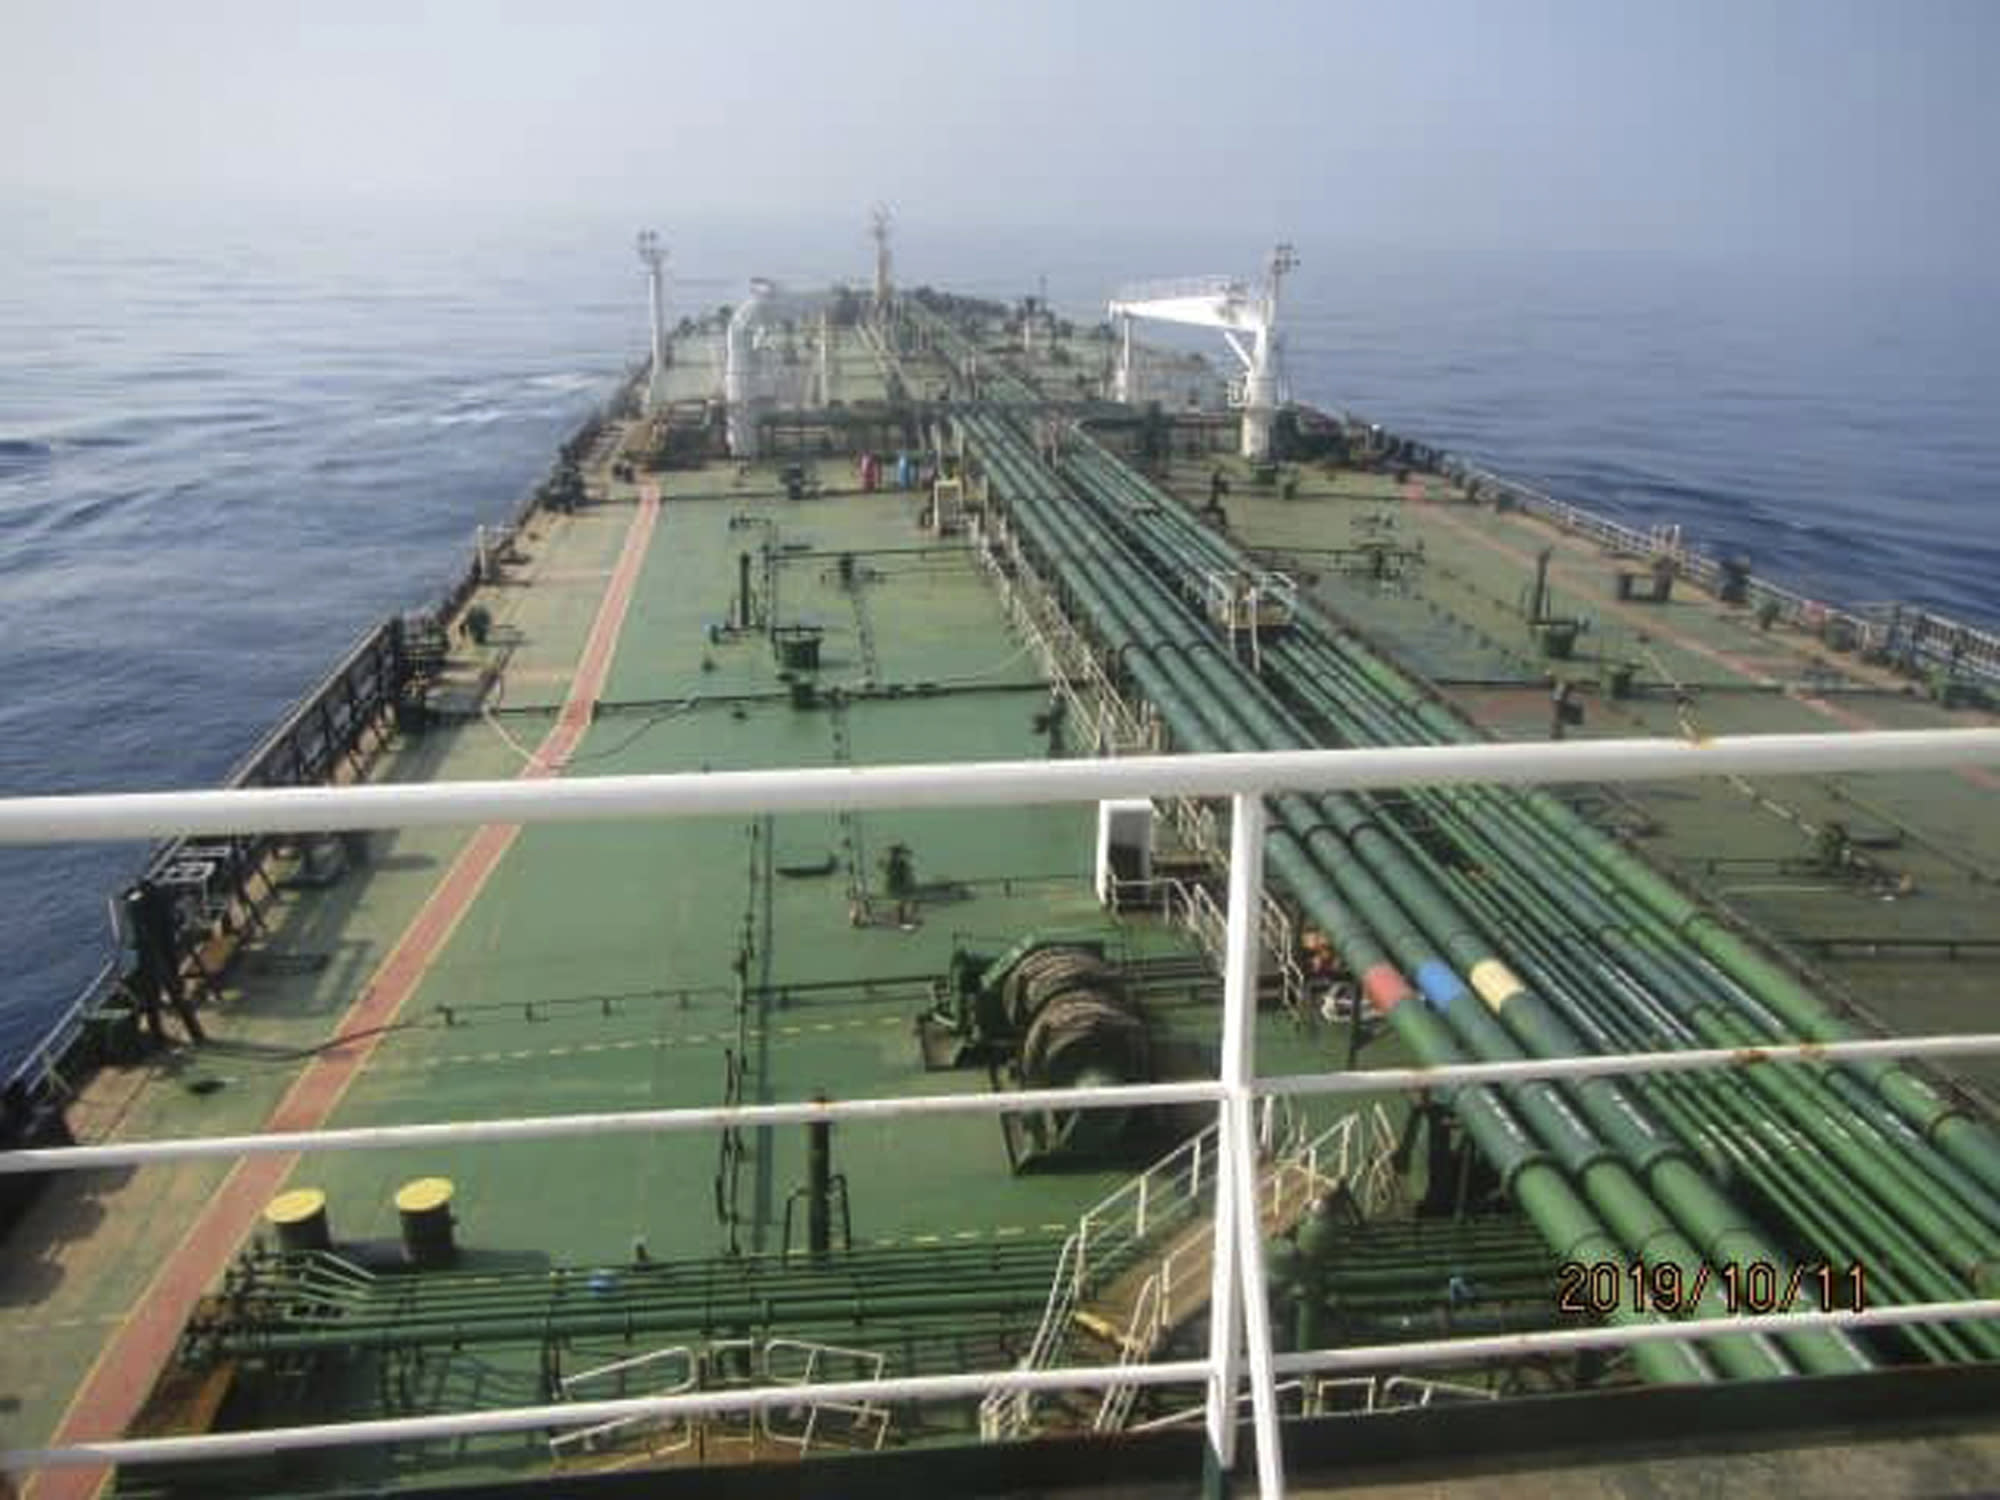 Iranian official says oil tanker attack will not go unpunished